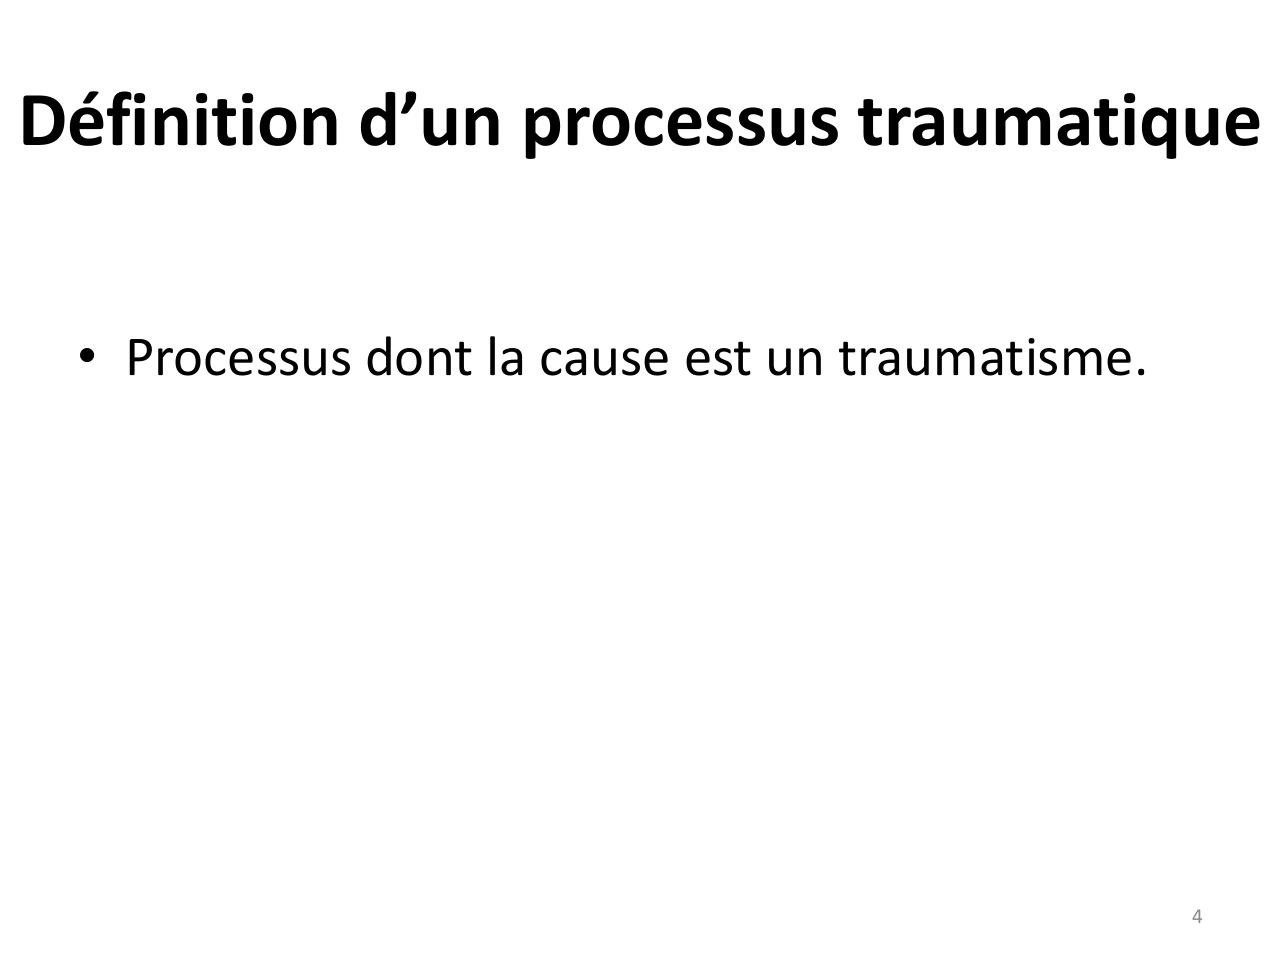 Cours IFSI - Introduction aux processus traumatiques.pdf - page 4/24